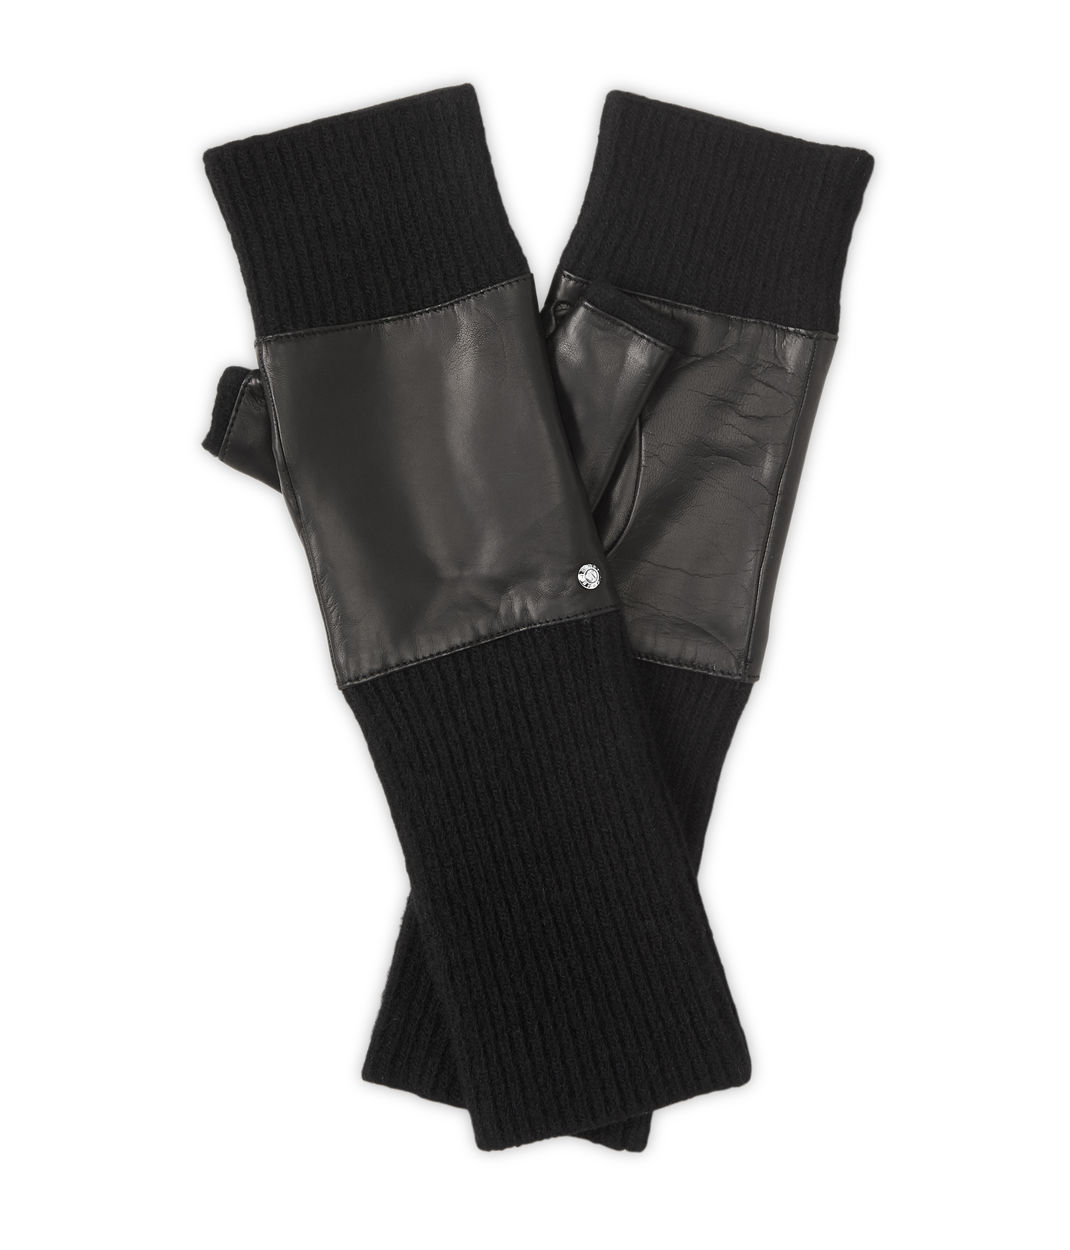 Leather Fingerless Gloves at Henri Bendel : Glam gifts for a female BFF